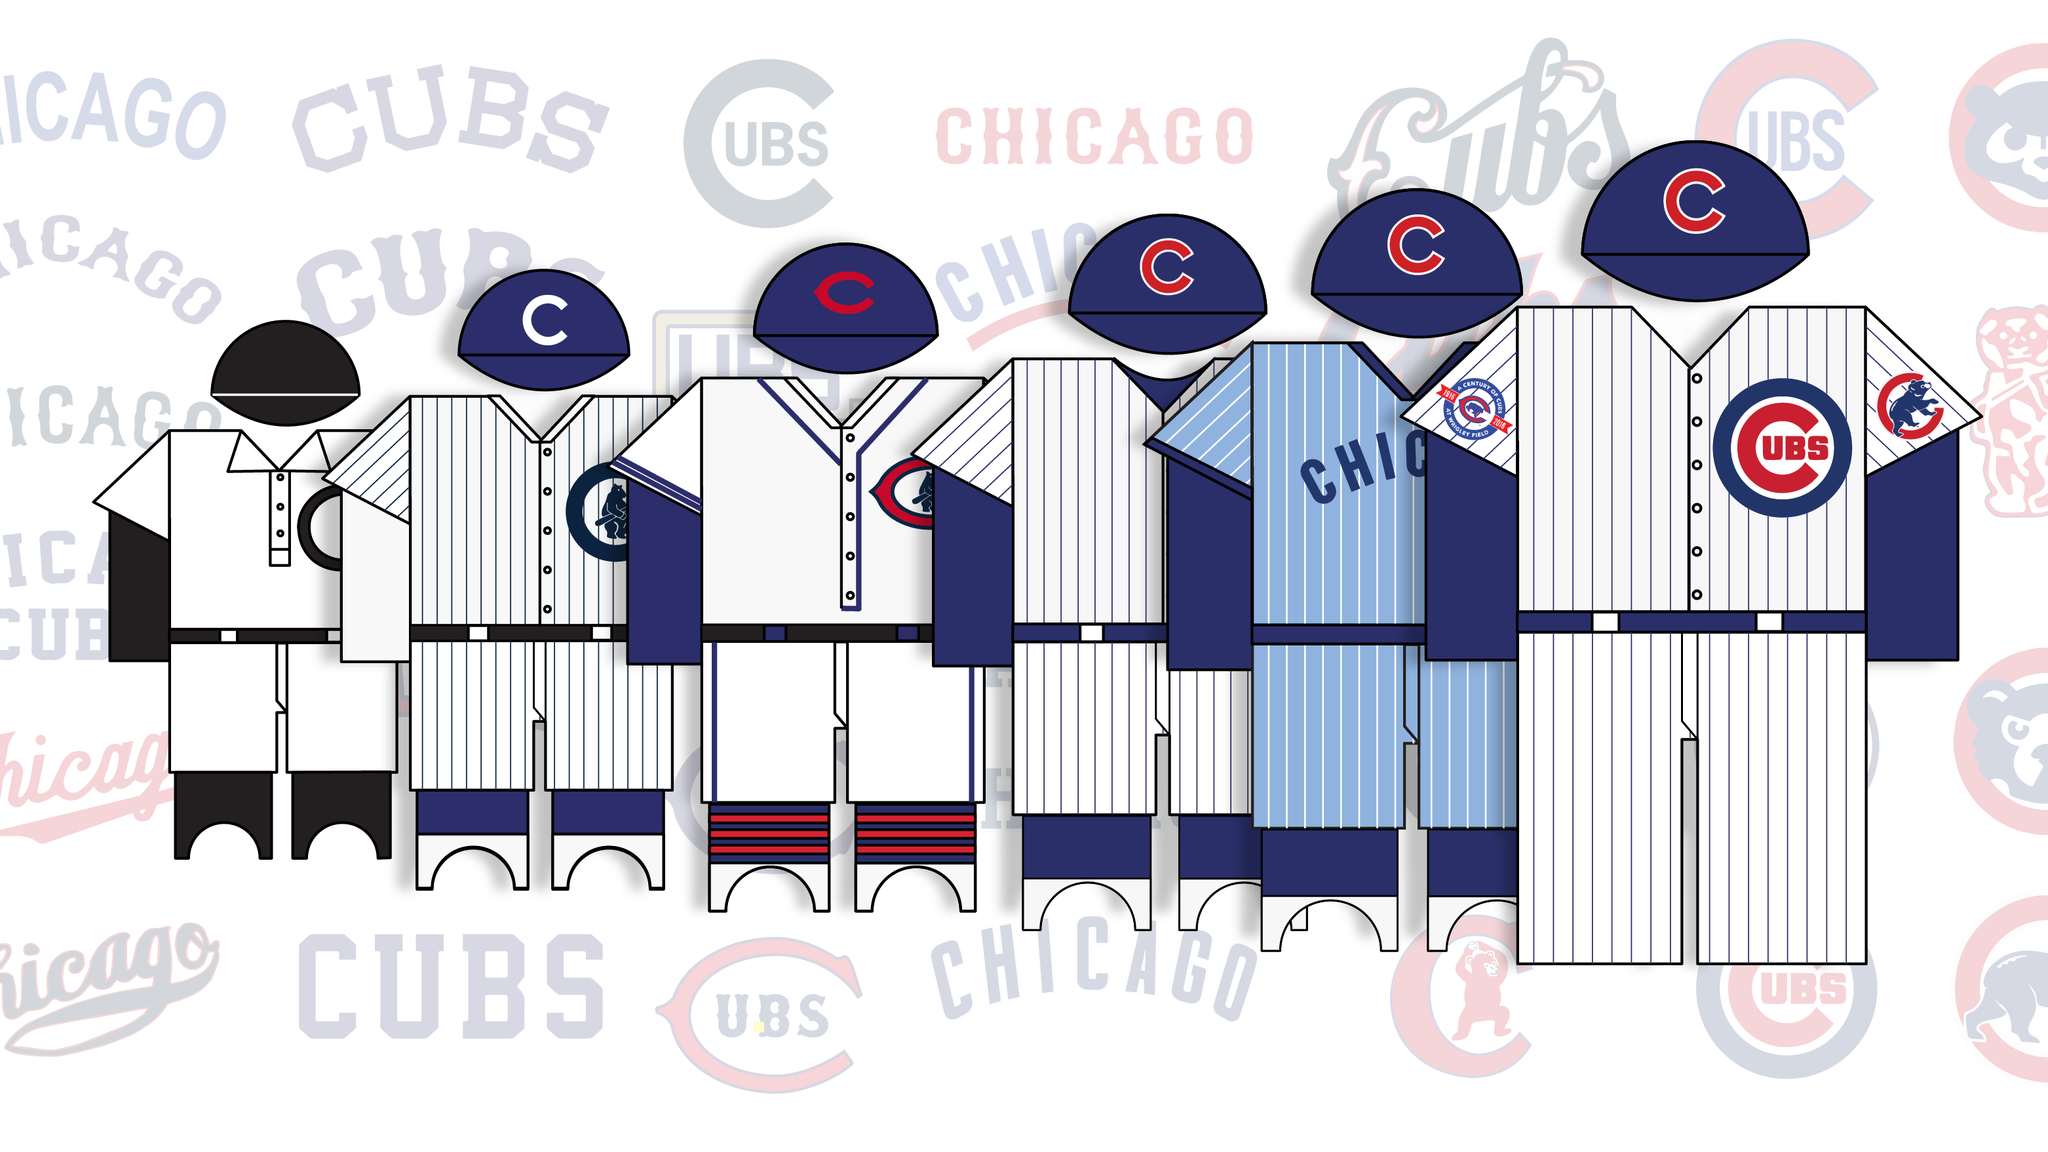 113 years of Cubs uniforms f0bfd88baf6